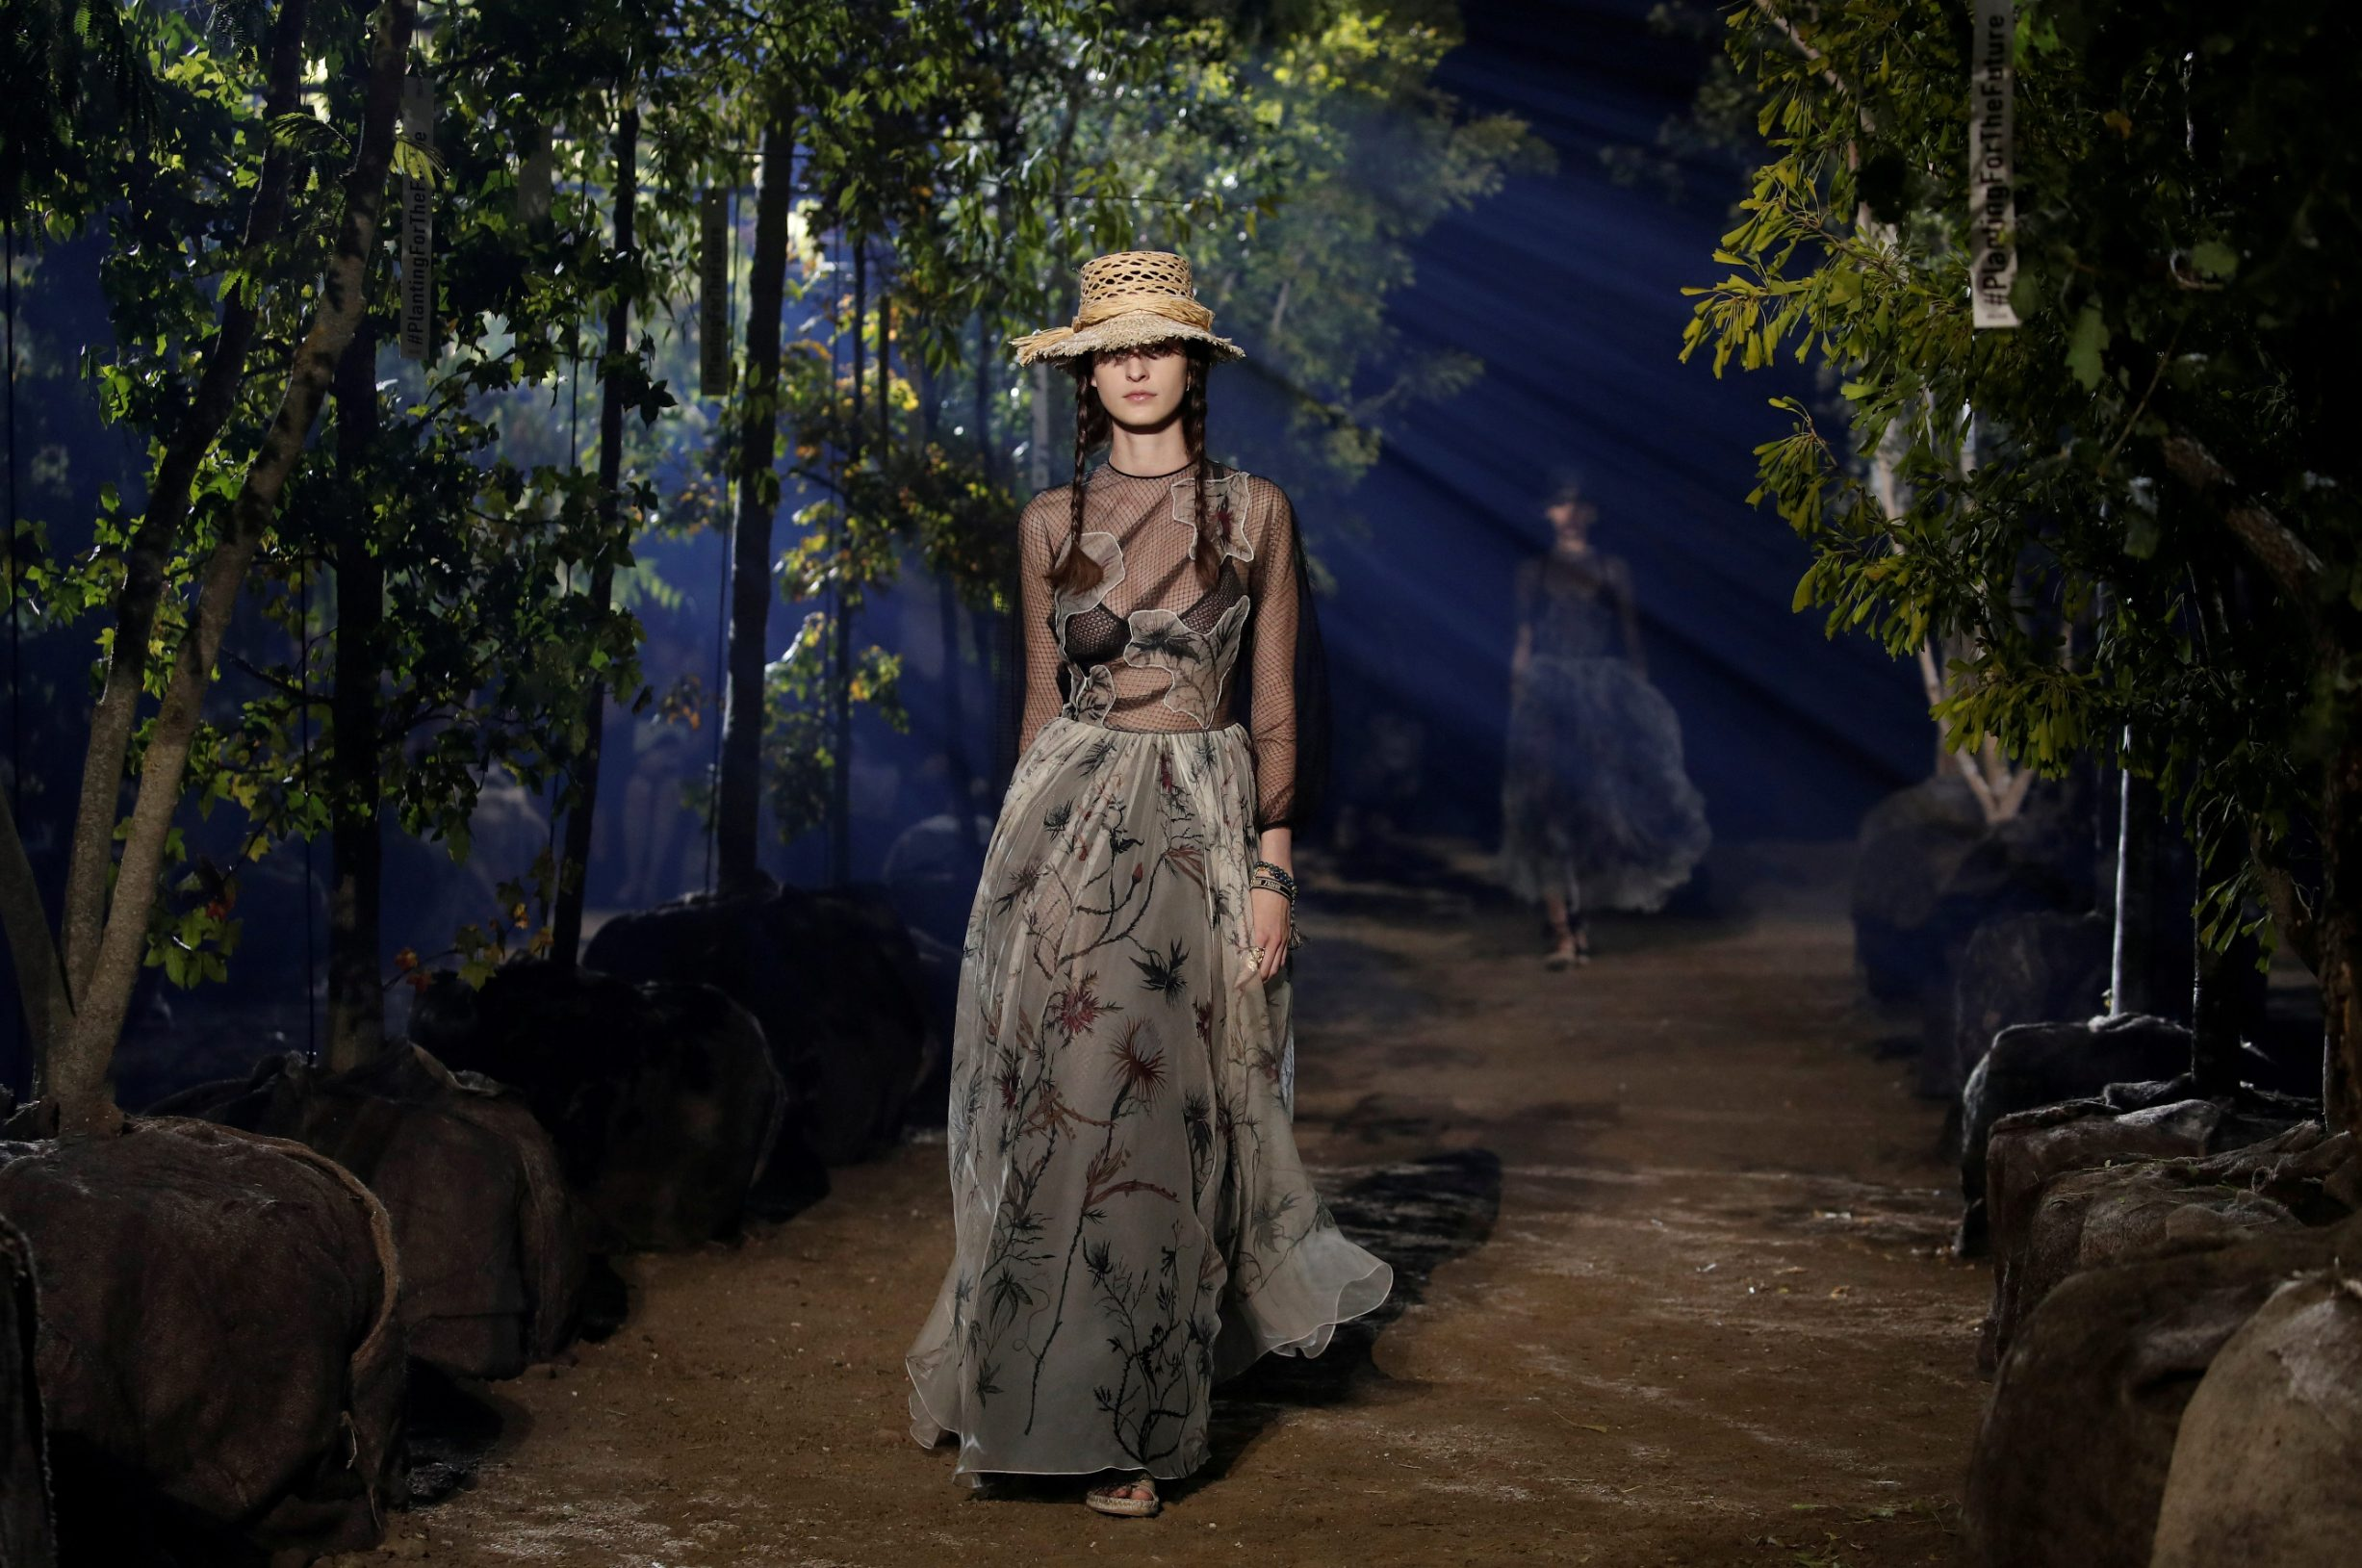 FILE PHOTO: A model presents a creation by designer Maria Grazia Chiuri as part of her Spring/Summer 2020 women's ready-to-wear collection show for fashion house Dior during Paris Fashion Week in Paris, France, September 24, 2019. REUTERS/Benoit Tessier/File Photo